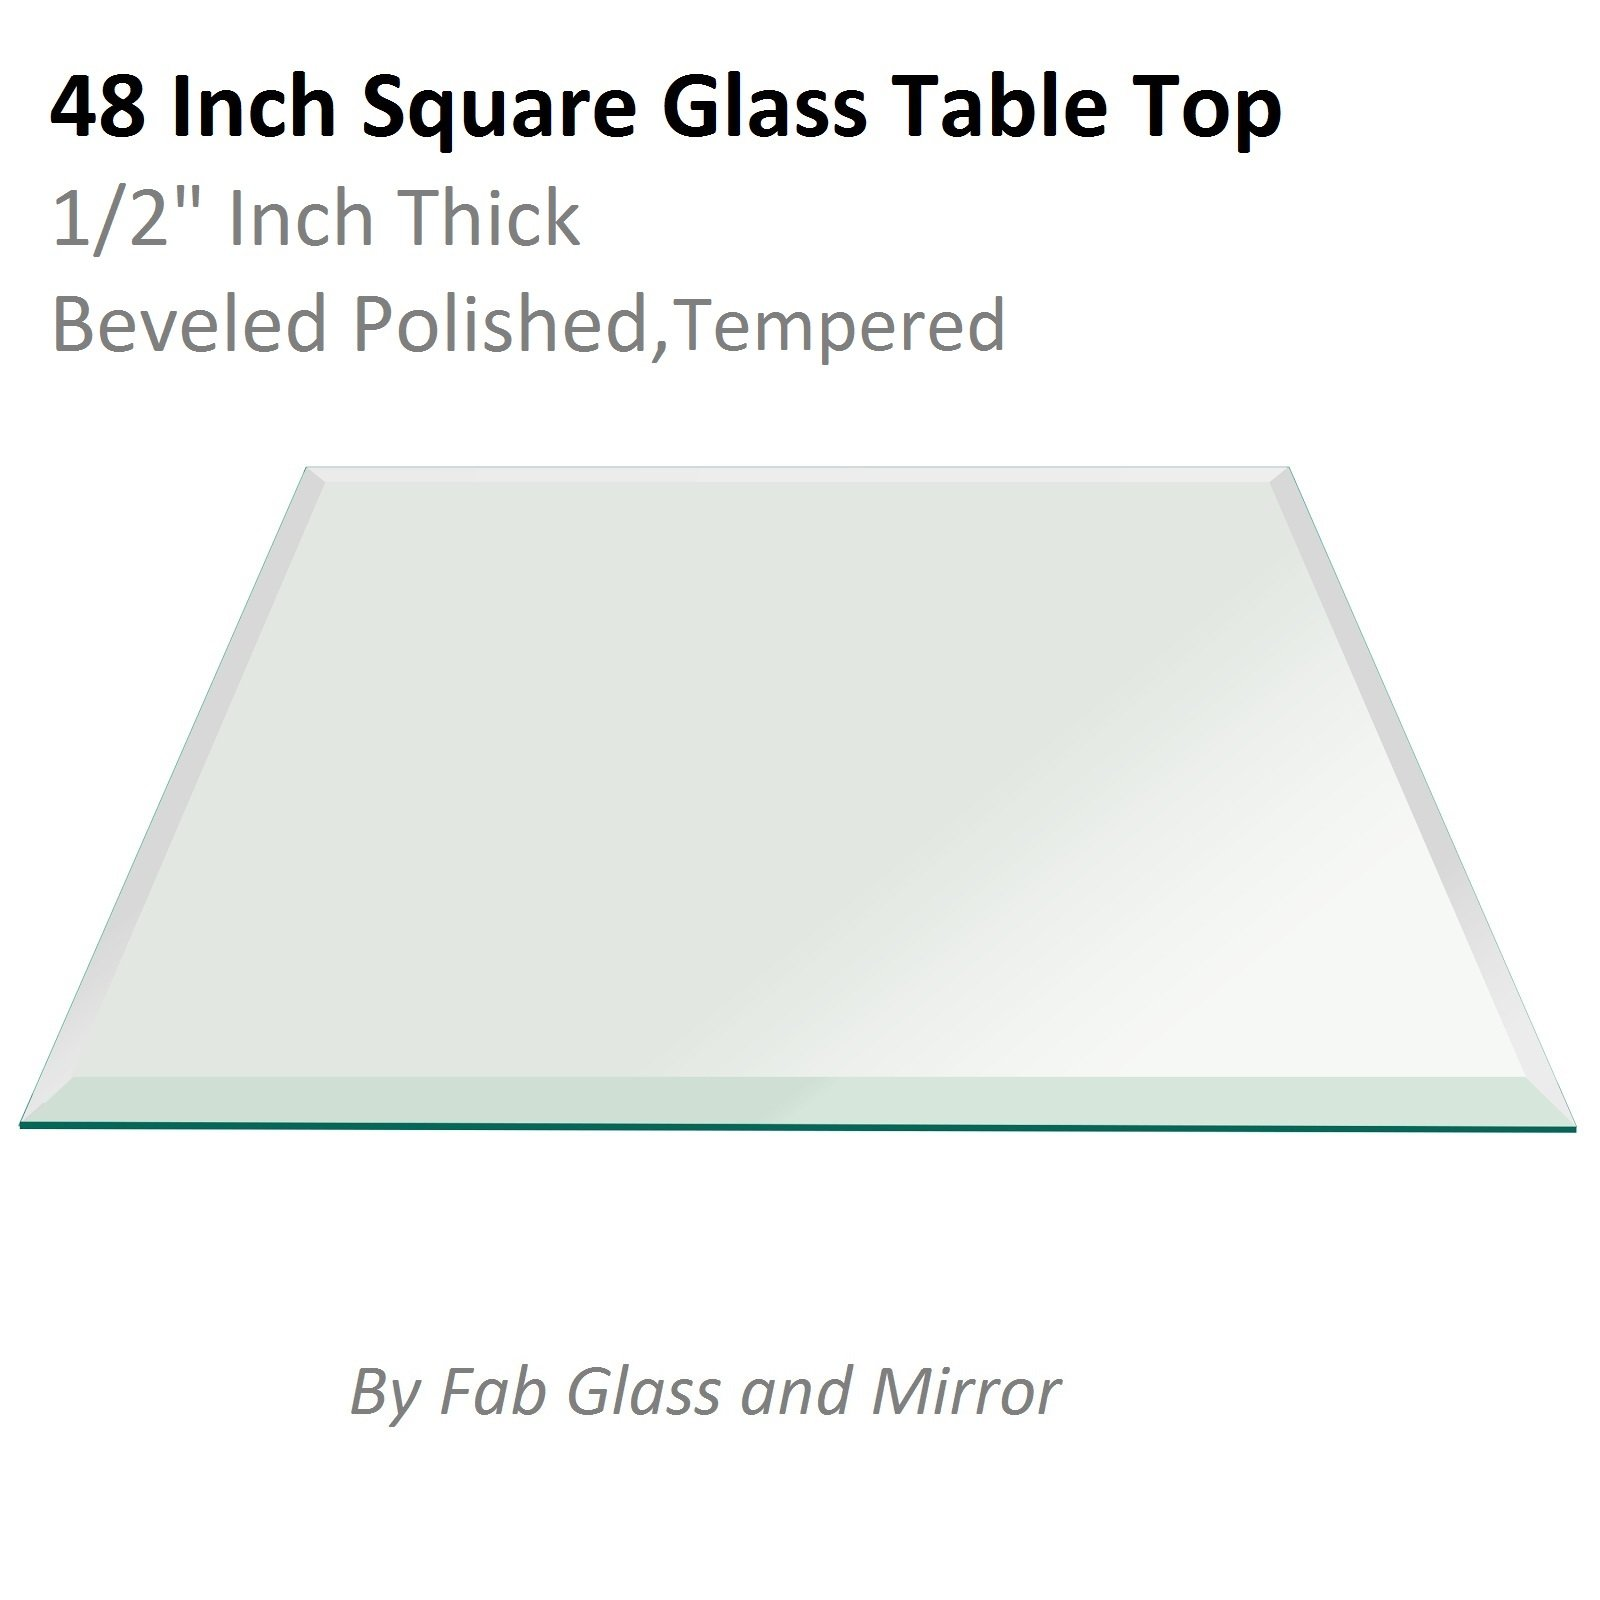 Fab Glass and Mirror Square Clear Glass Table Top 48'' Inch Tempered 1/2'' Thick Bevel Polish Radius Corners